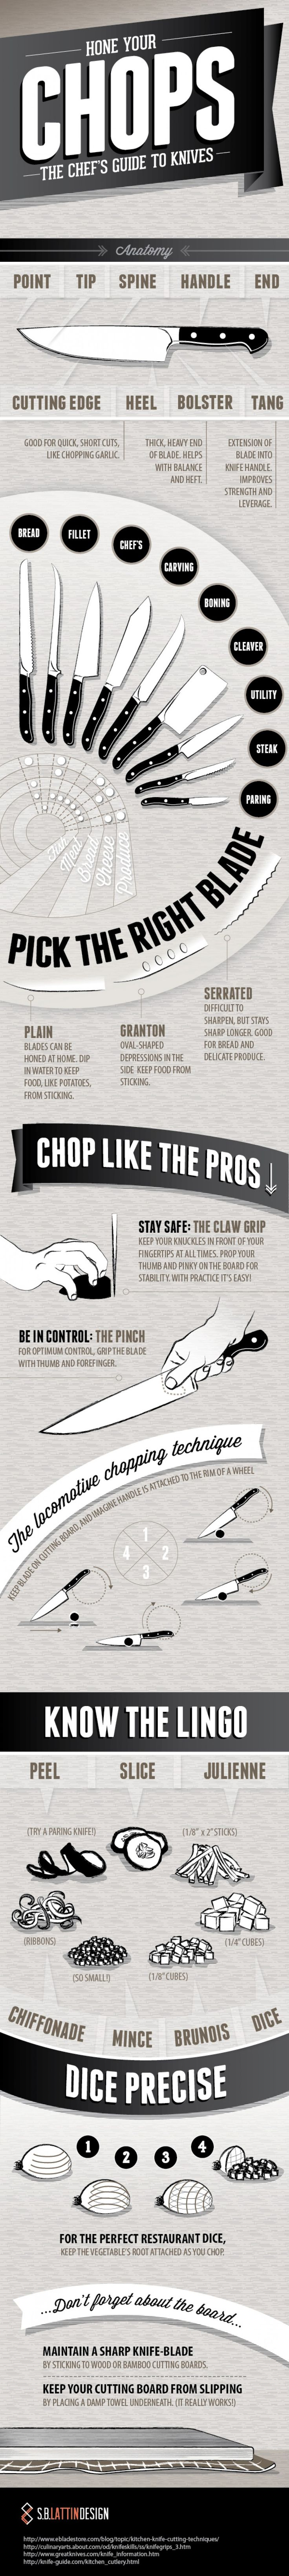 Infographic cooking knives | FoodiesFavorites.com ★